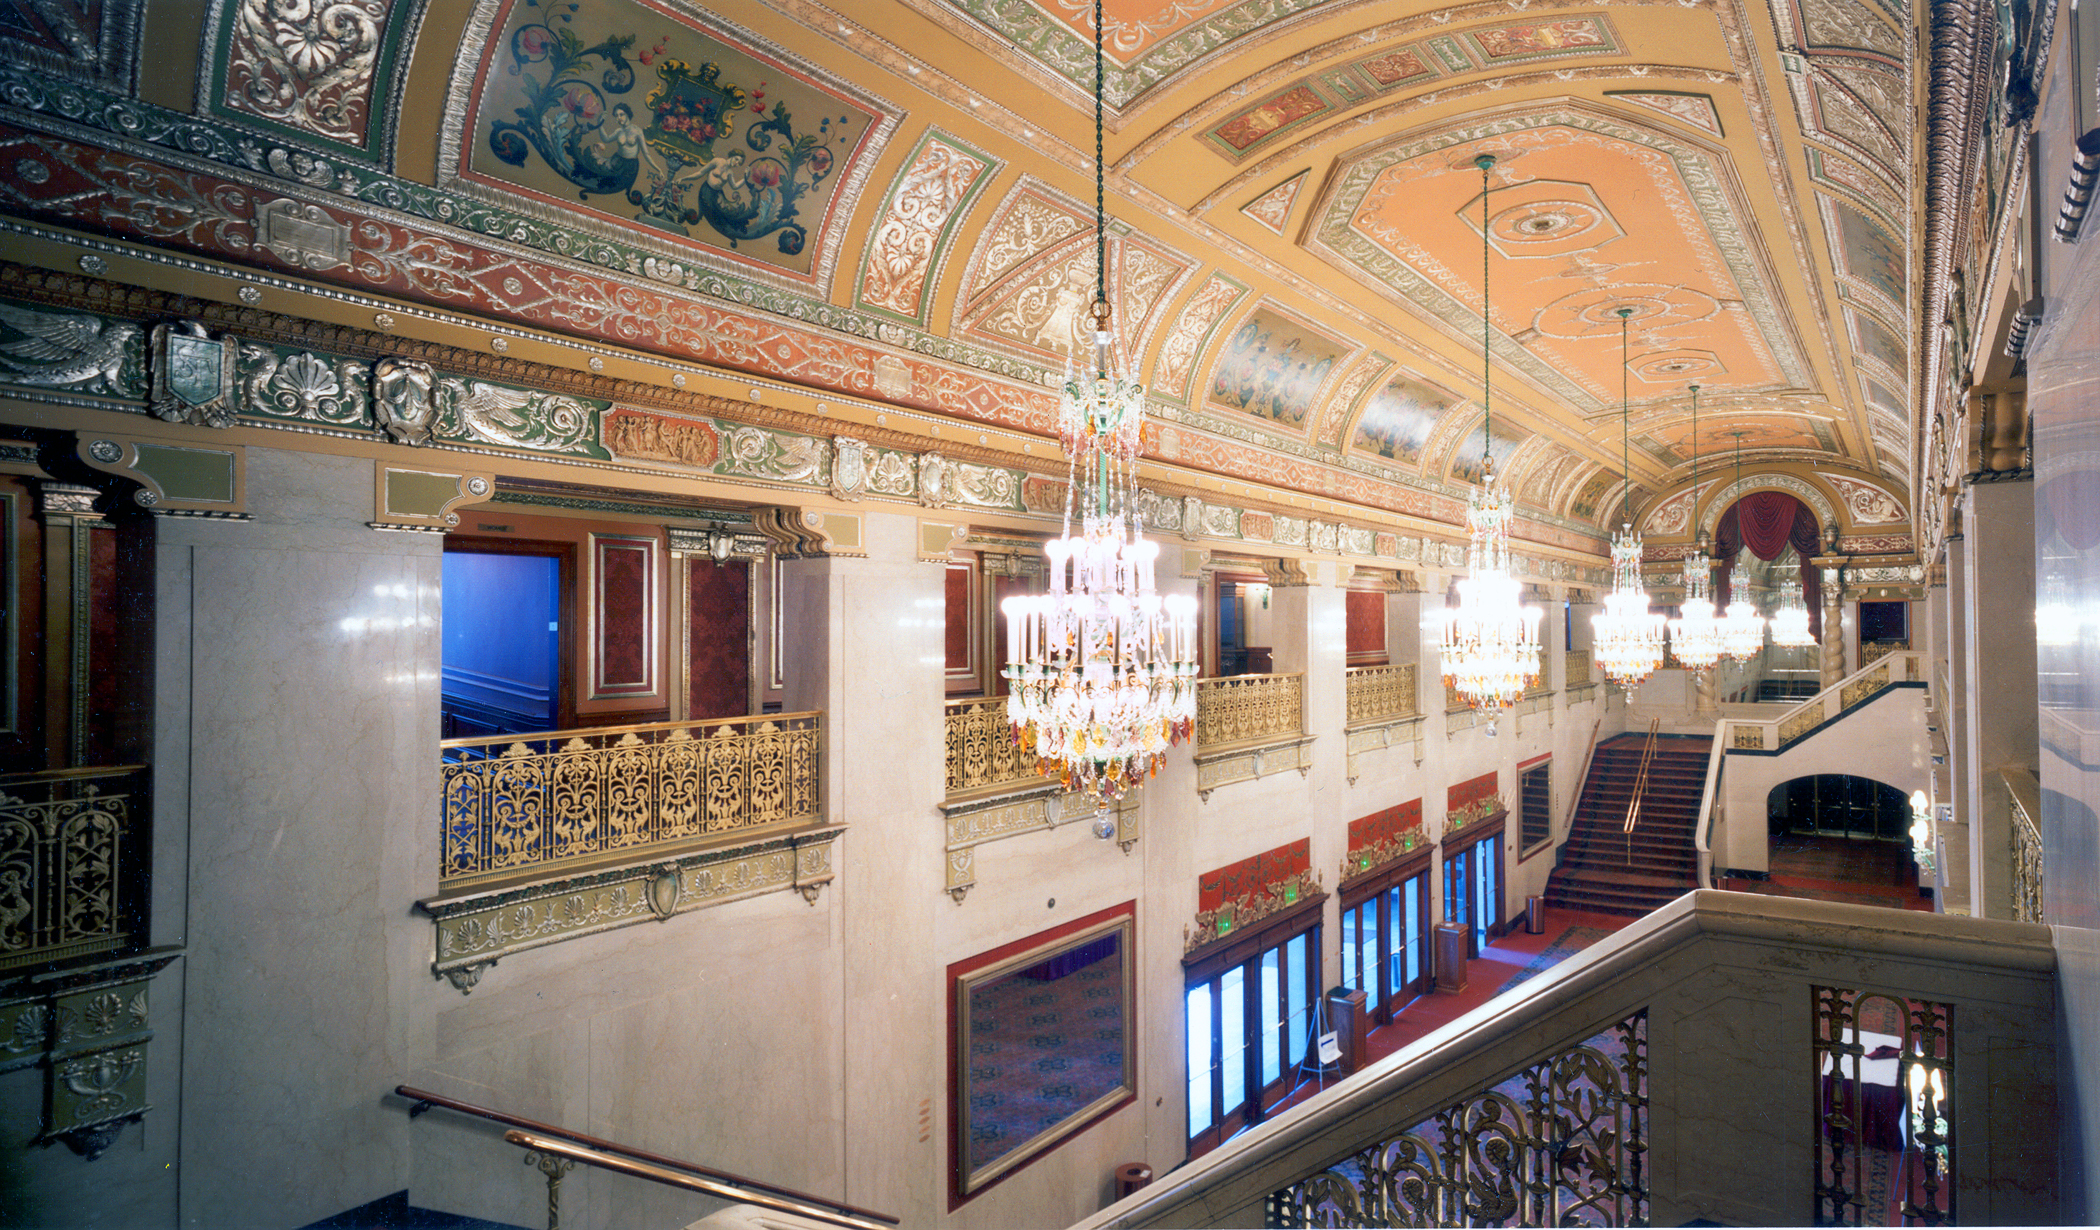 BENEDUM CENTER